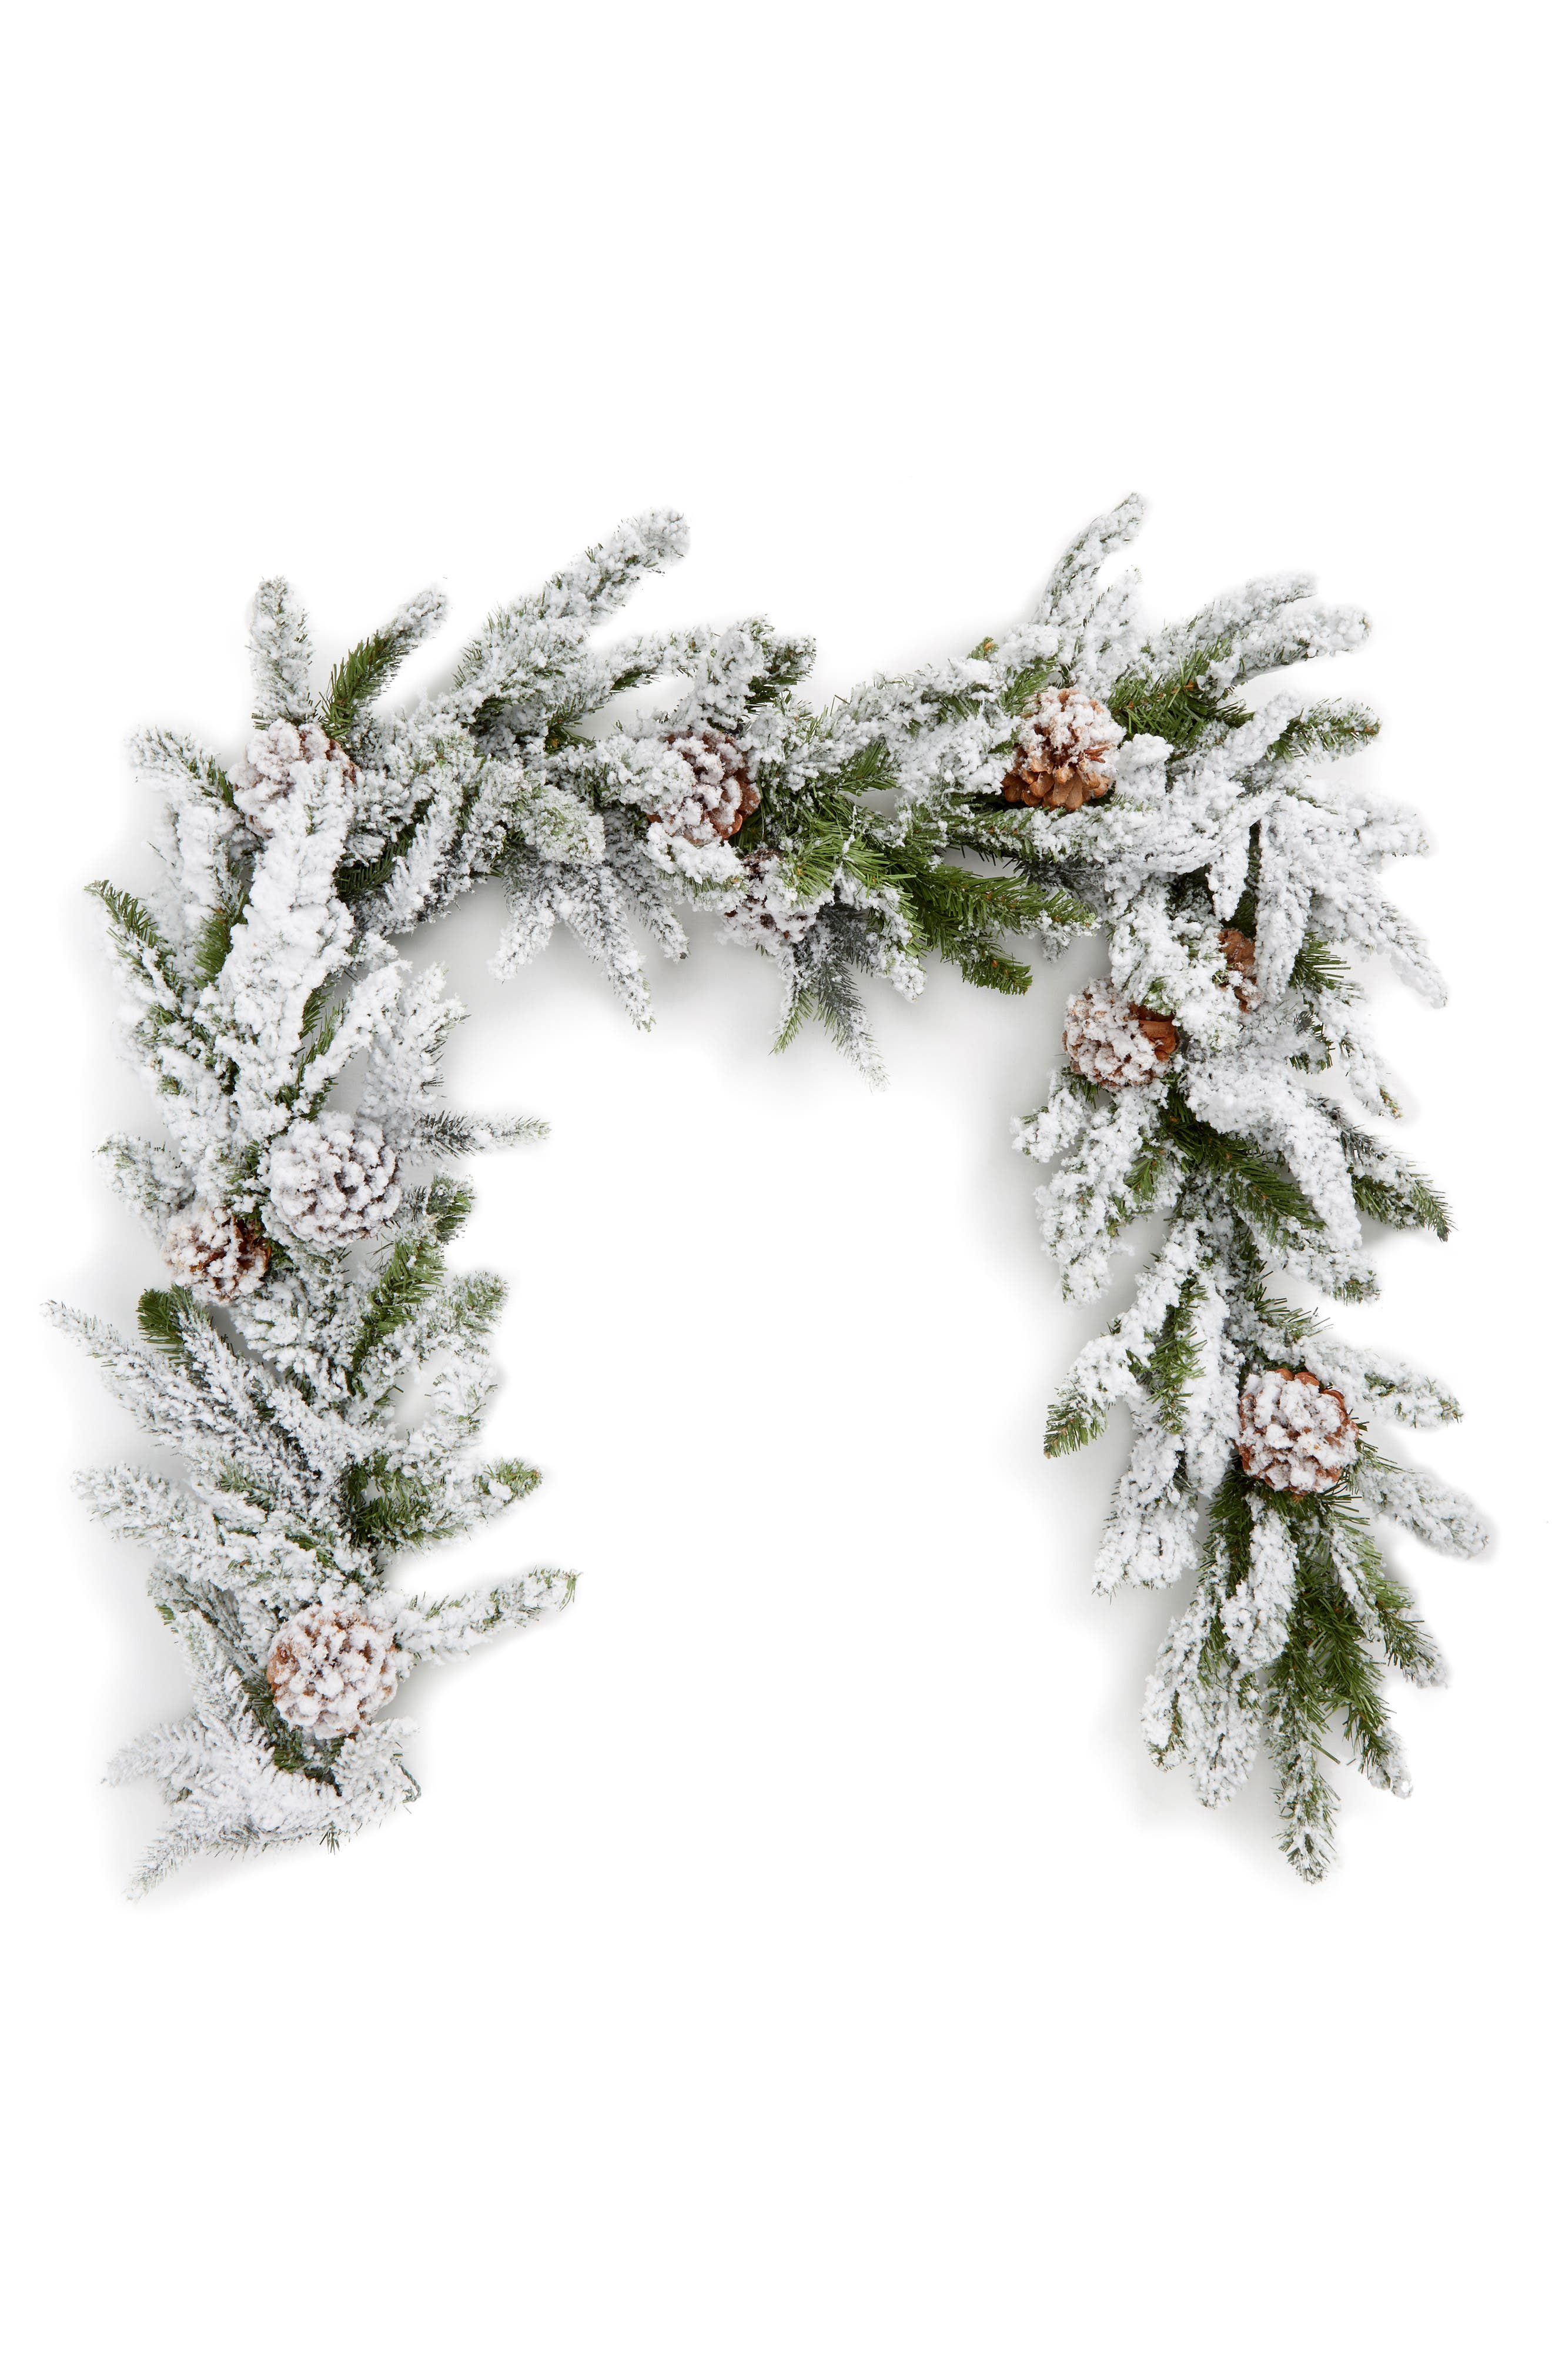 Main Image - ALLSTATE Pinecone & Snow Garland